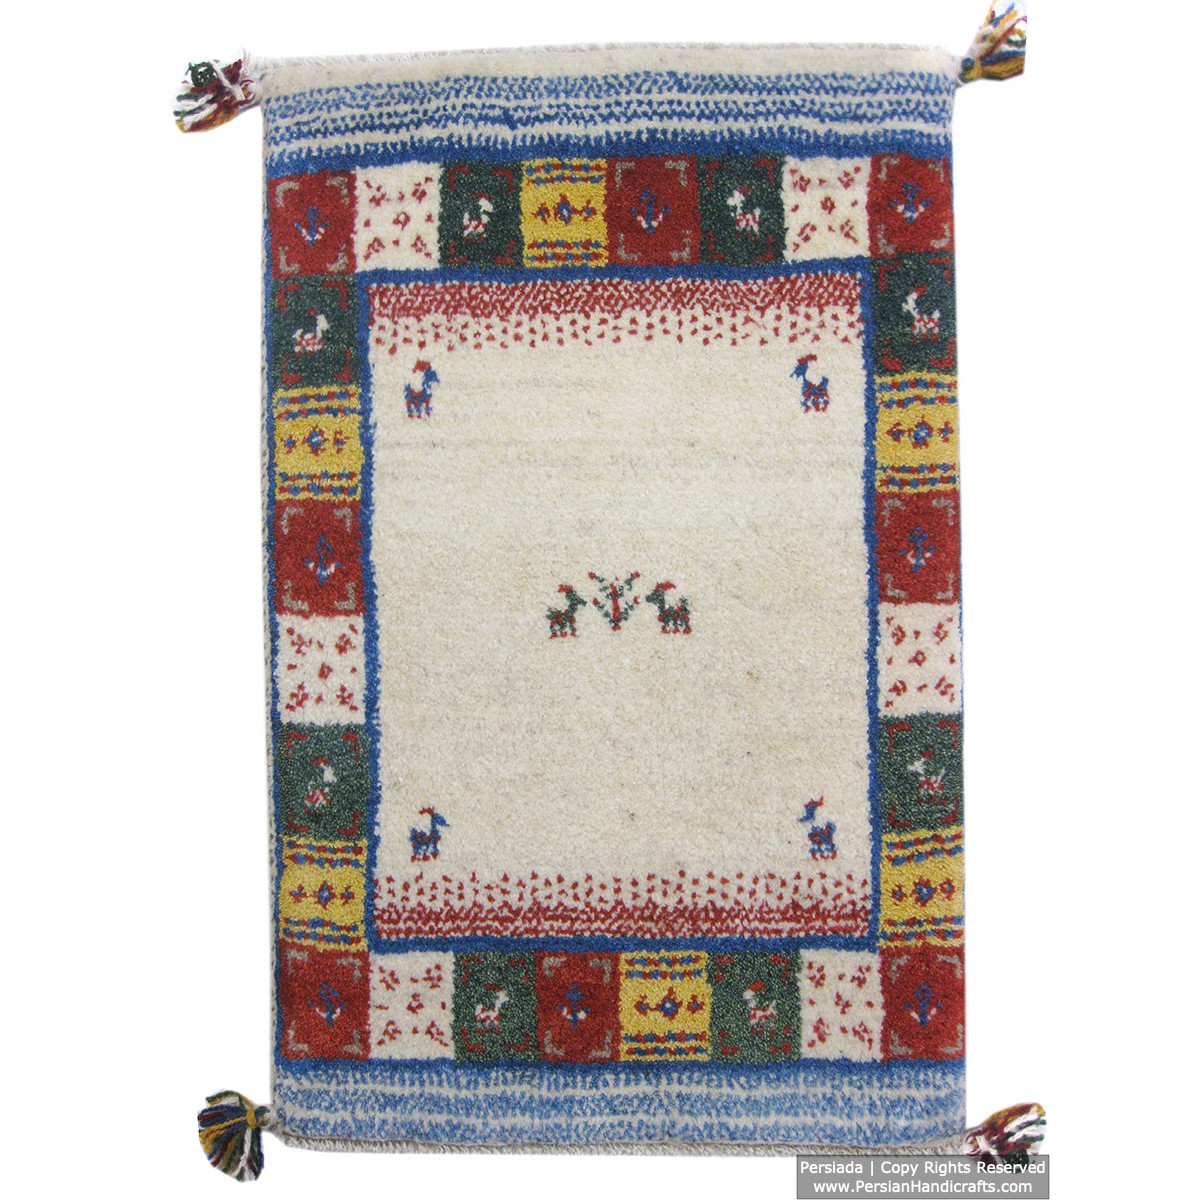 Gabbeh Wool Rug from Persian Ghashghai Nomads - RG5025-Persian Handicrafts